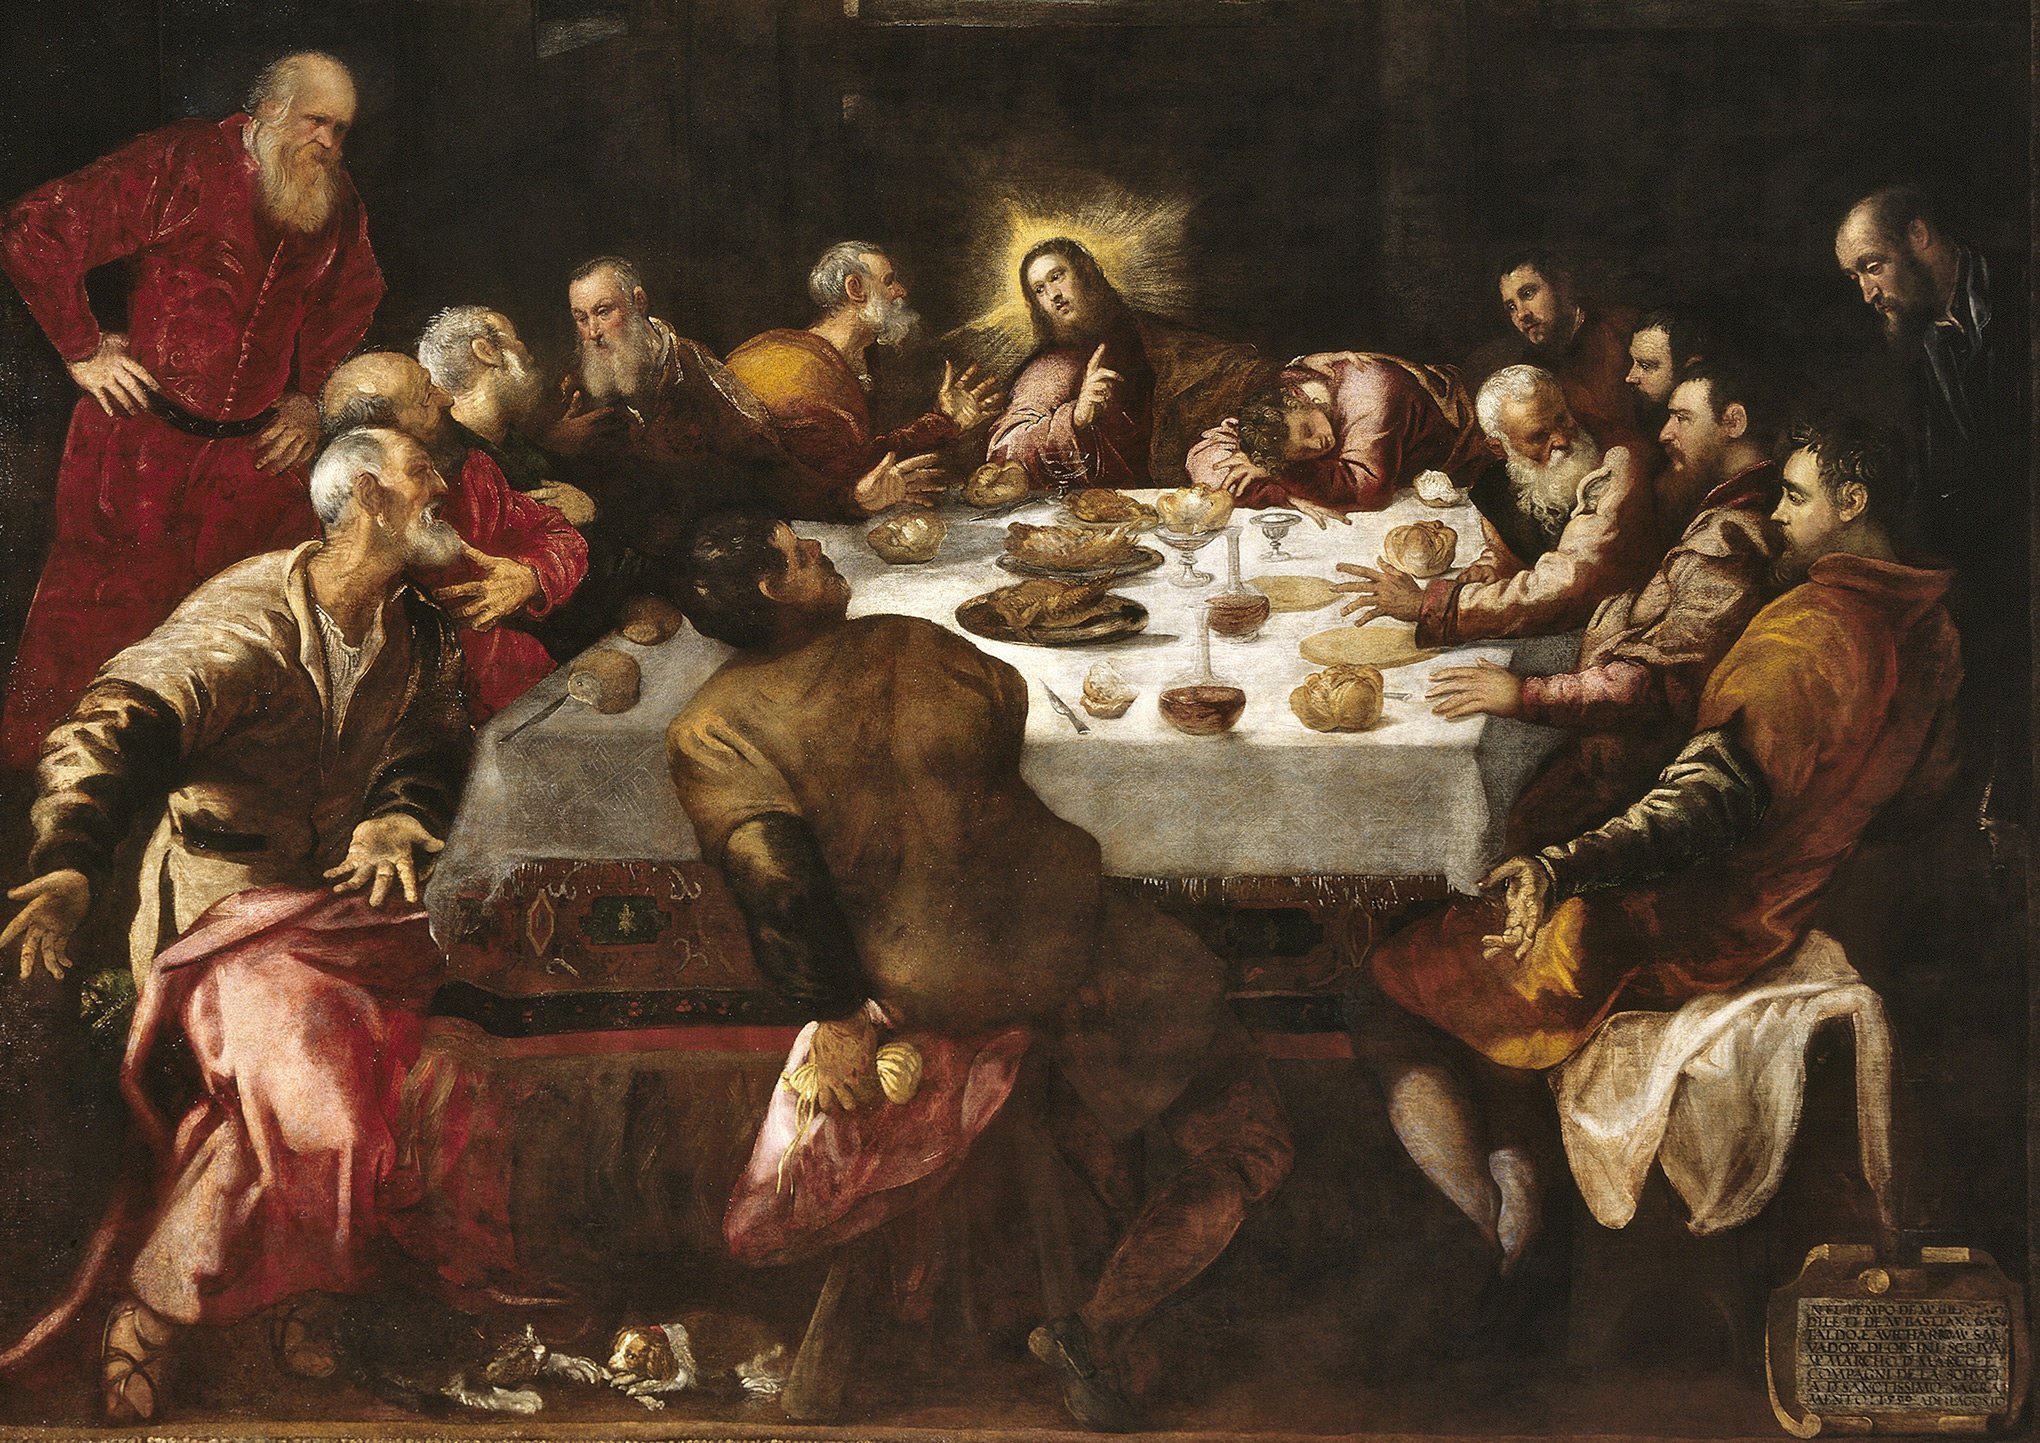 Compare LAST SUPPER done by Dirk Bouts, Leonardo Da Vinci, Albrecht Durer and Tintoretto